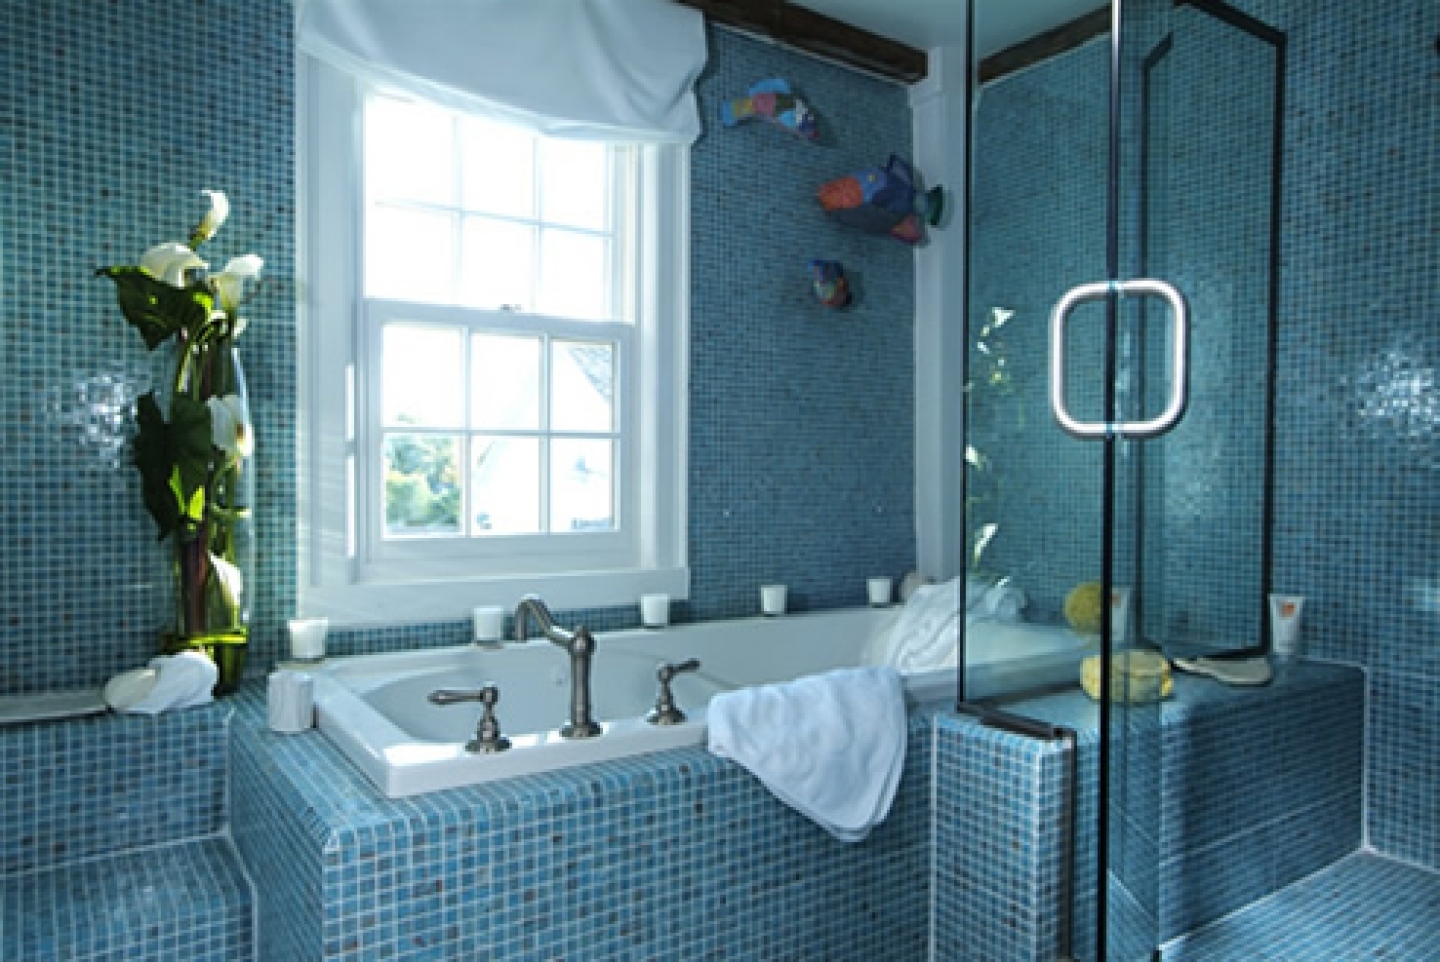 40 vintage blue bathroom tiles ideas and pictures for Toilet designs pictures